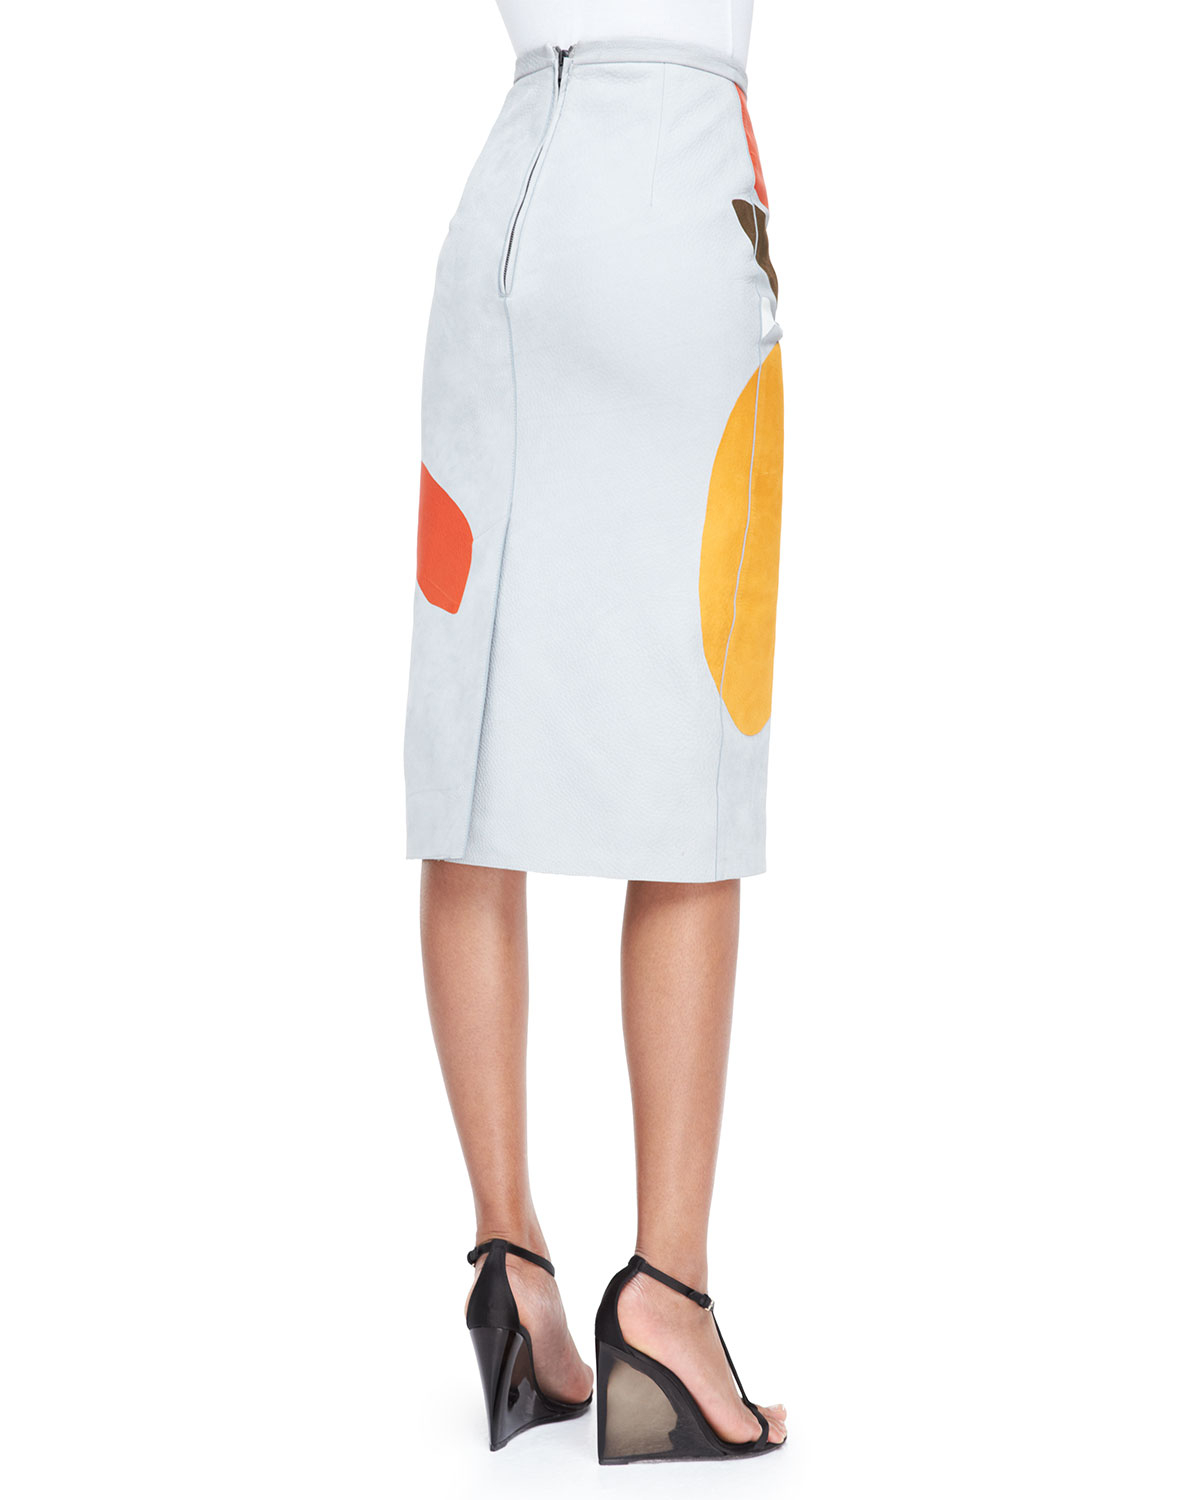 Book Cover White Jeans ~ Lyst burberry prorsum book cover printed pencil skirt in